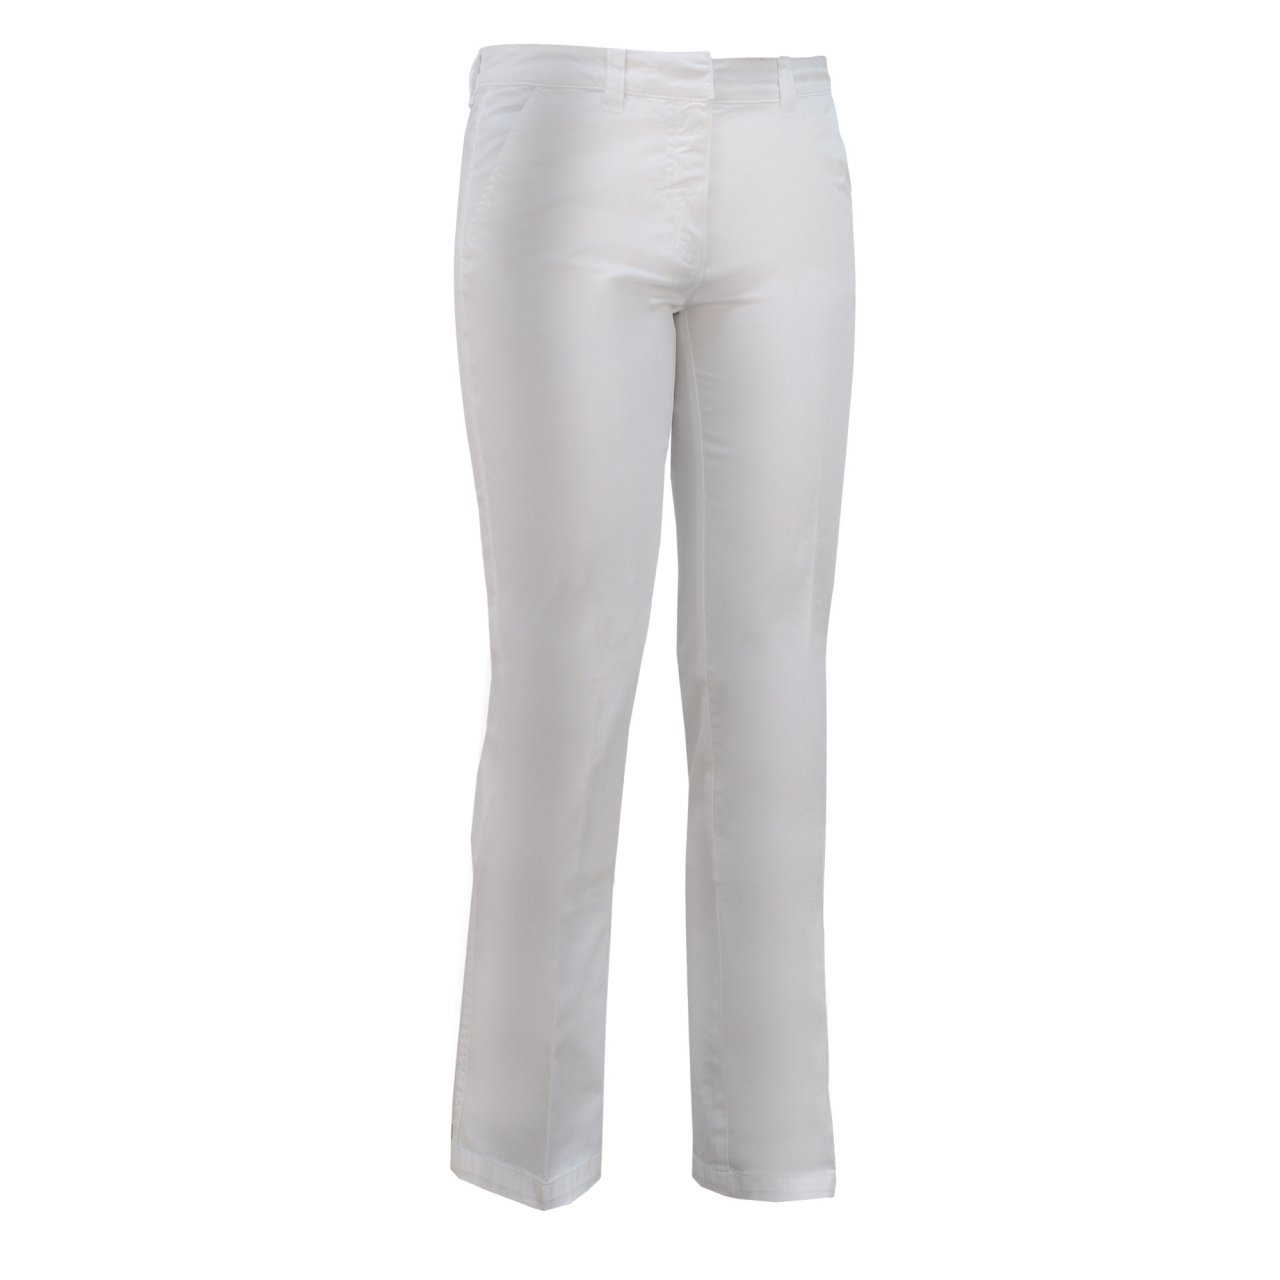 Slam Margate new pantalone donna